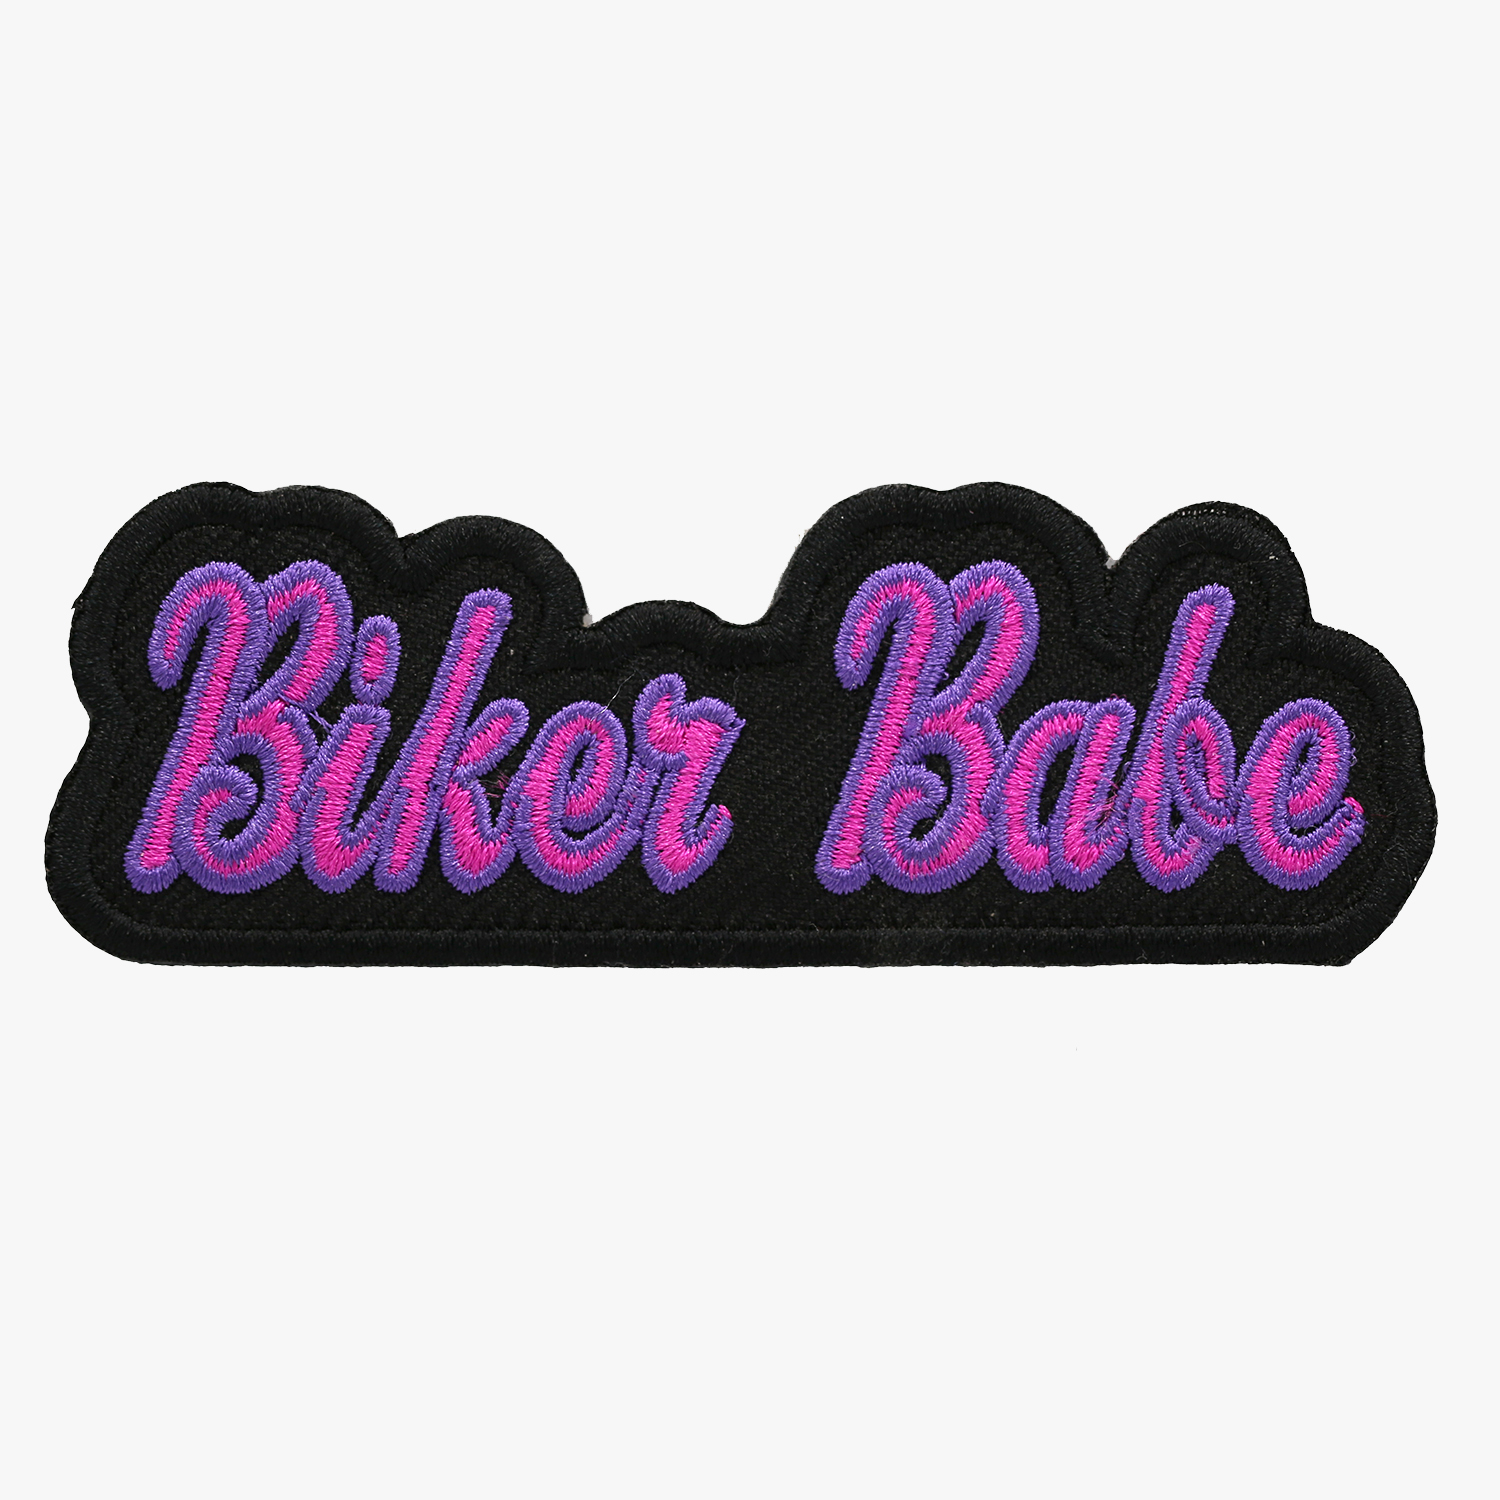 Biker Babe Embroidered Woman Biker Vest Patch